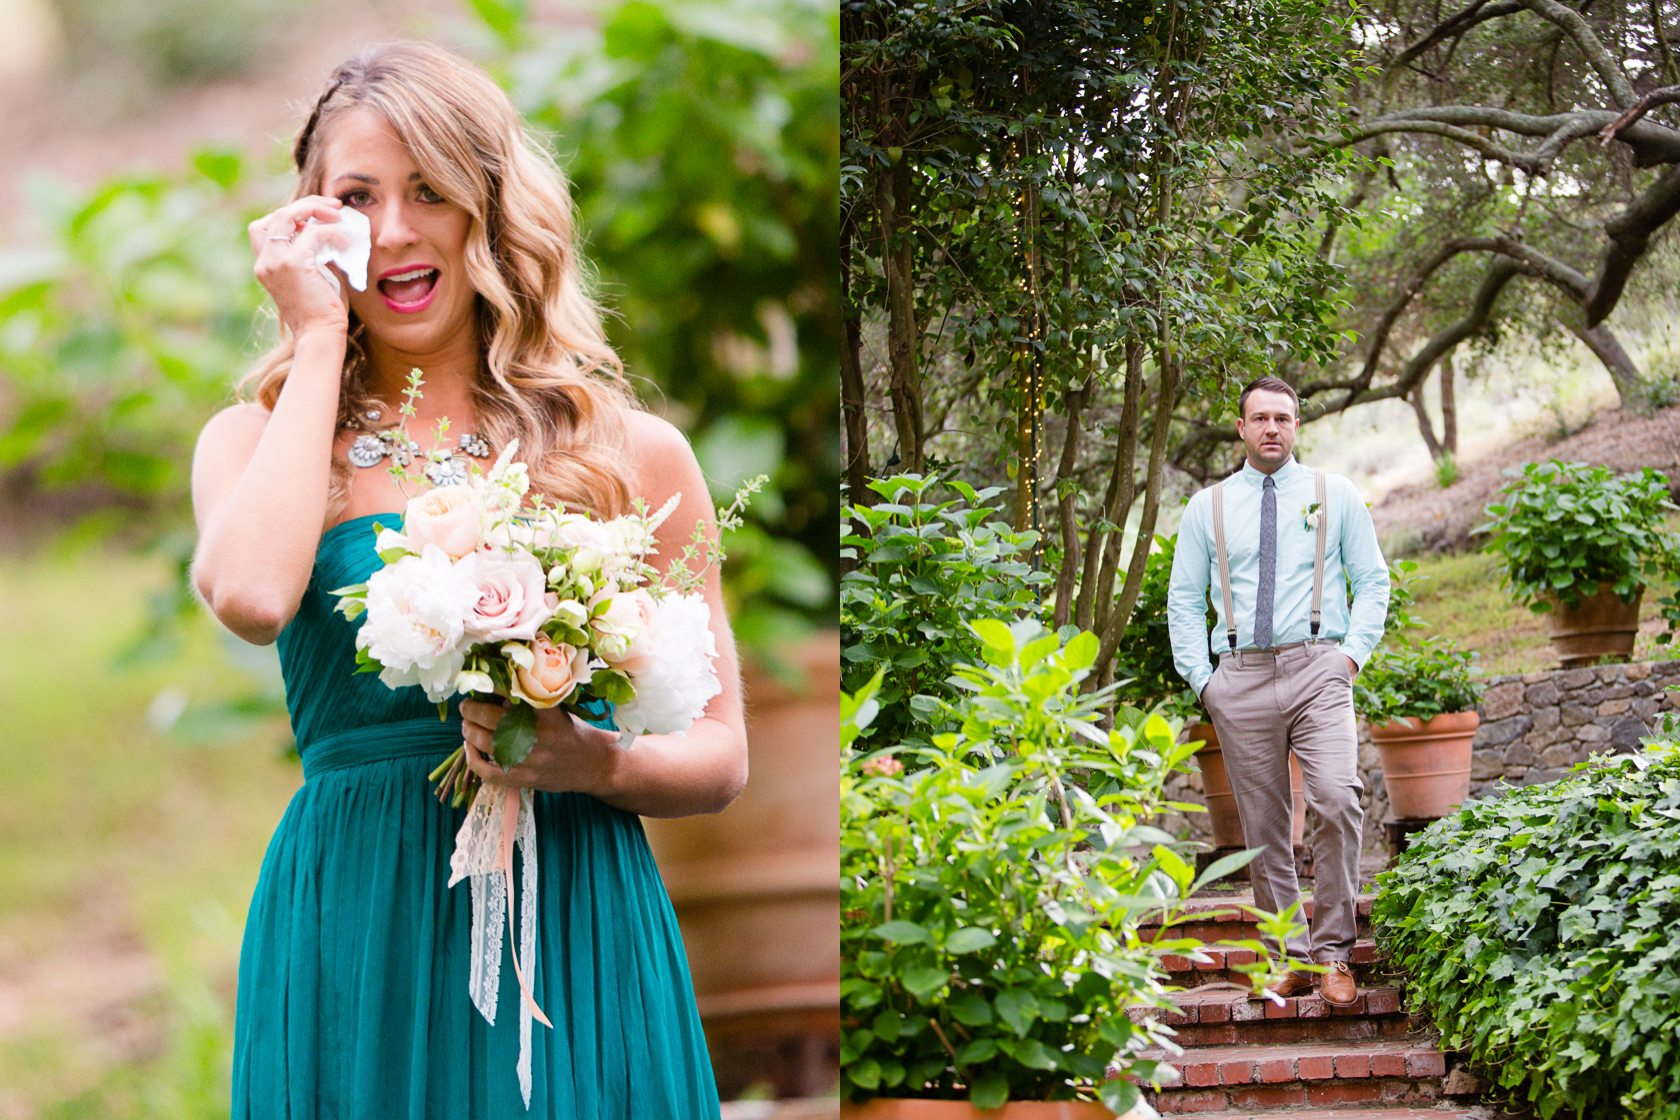 The_Printed_Palette_Wedding_at_Calamigos_Ranch_053.jpg